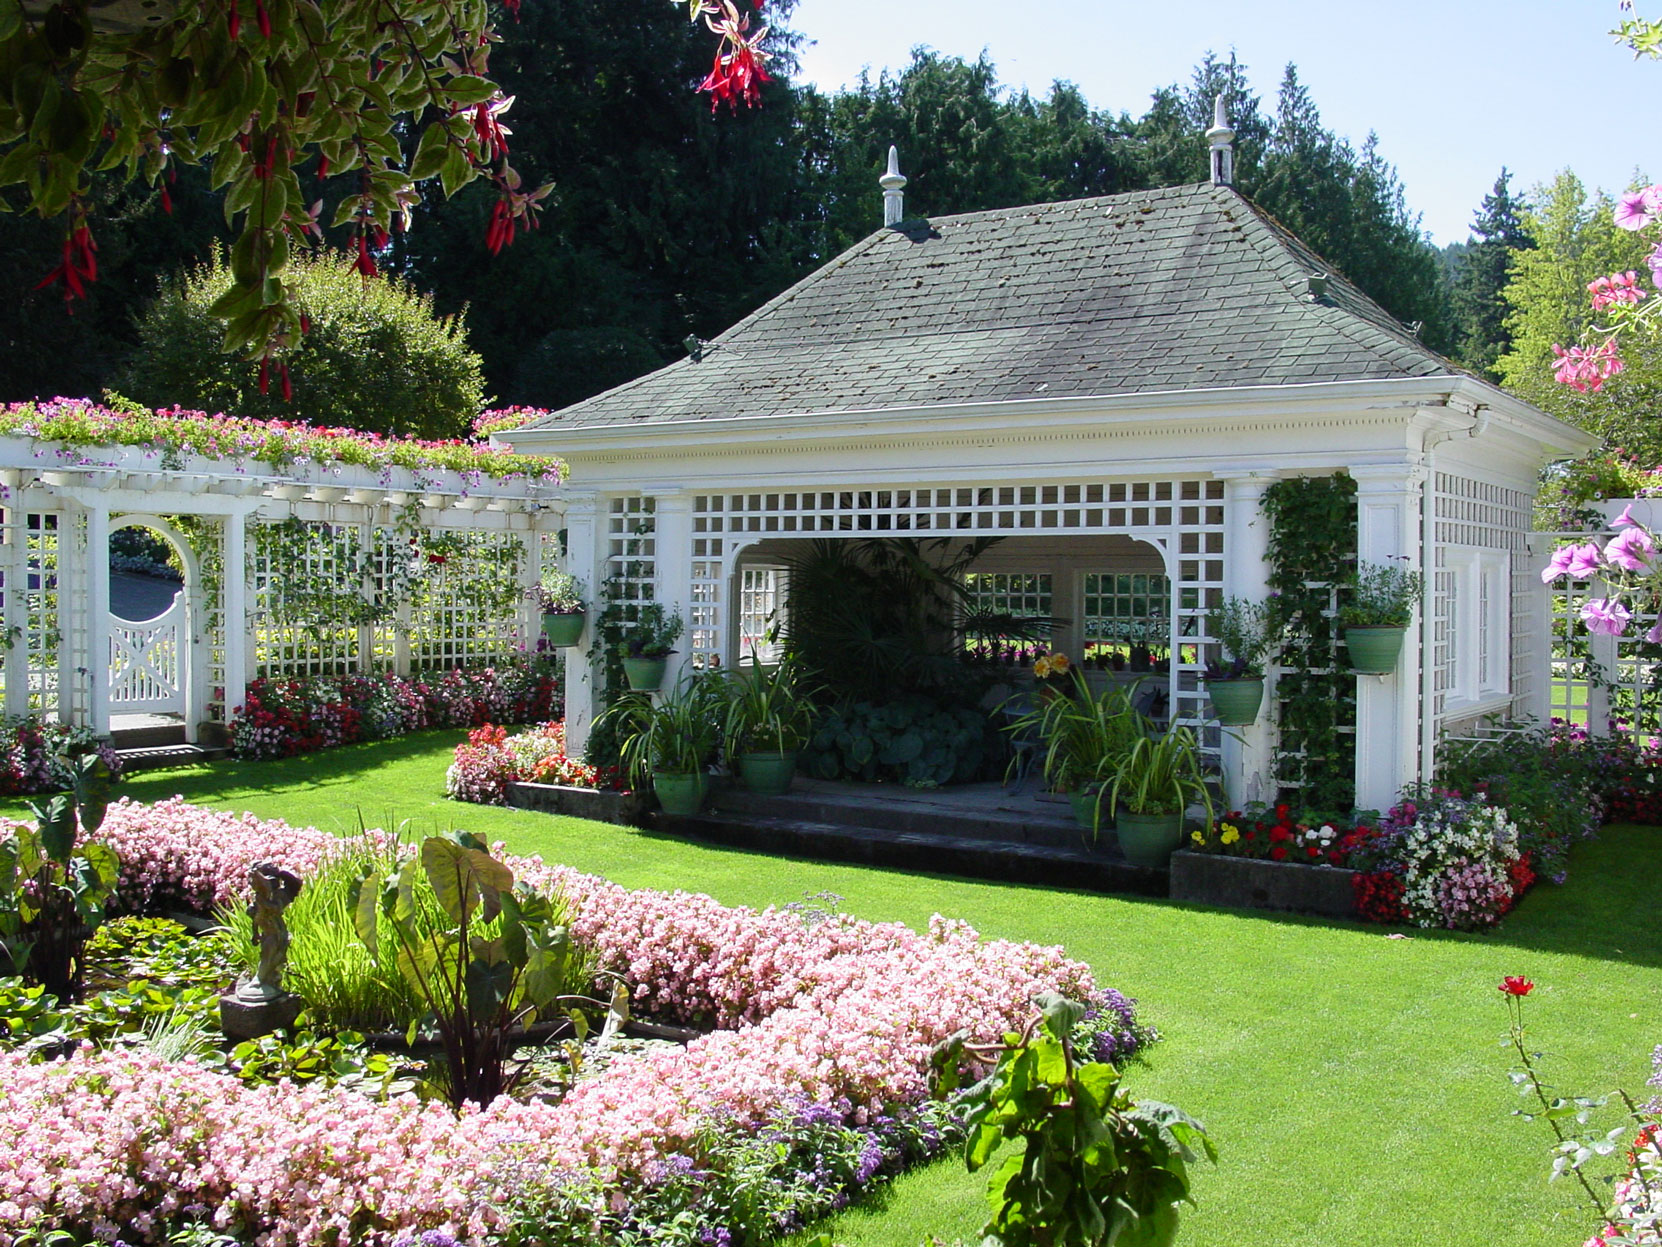 Jennie Butchart's Private Garden, designed and built in 1920-1921 by architect Samuel Maclure (photo by Author)